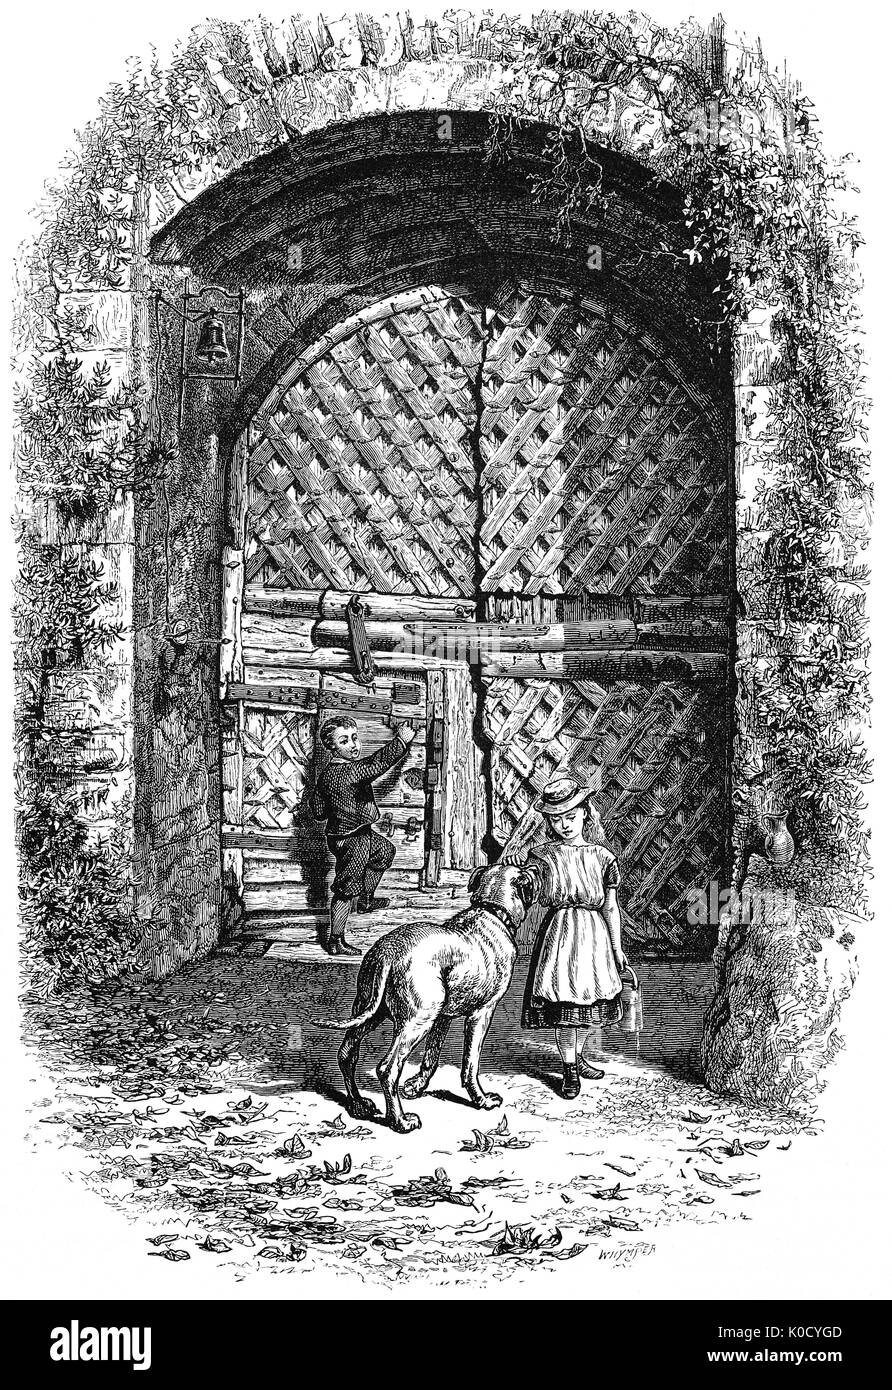 1870: Children and a dog in front of the gate of Chepstow Castle in Monmouthshire, Wales. It is the oldest surviving post-Roman stone fortification in Britain. Located above cliffs on the River Wye, construction began in 1067. By the 16th century its military importance had waned and parts of its structure were converted into domestic ranges. Although re-garrisoned during and after the English Civil War, by the 1700s it fell into decay. - Stock Image